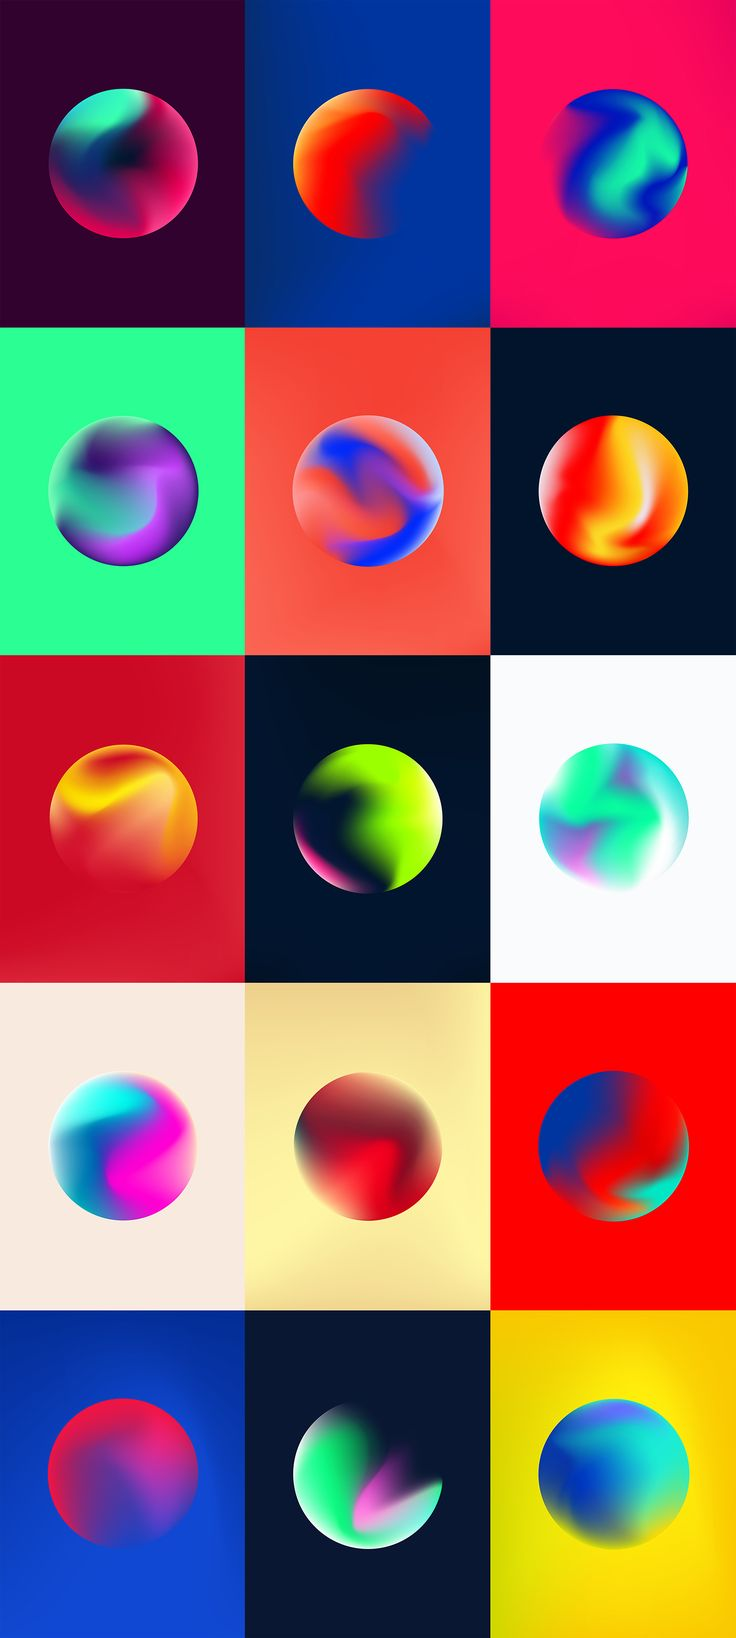 Wouldn't it be fun to designing your own planets? An experiment in colour and form. Get the free wallpapers, I'll also be offering prints if anyone is interested. Thanks!